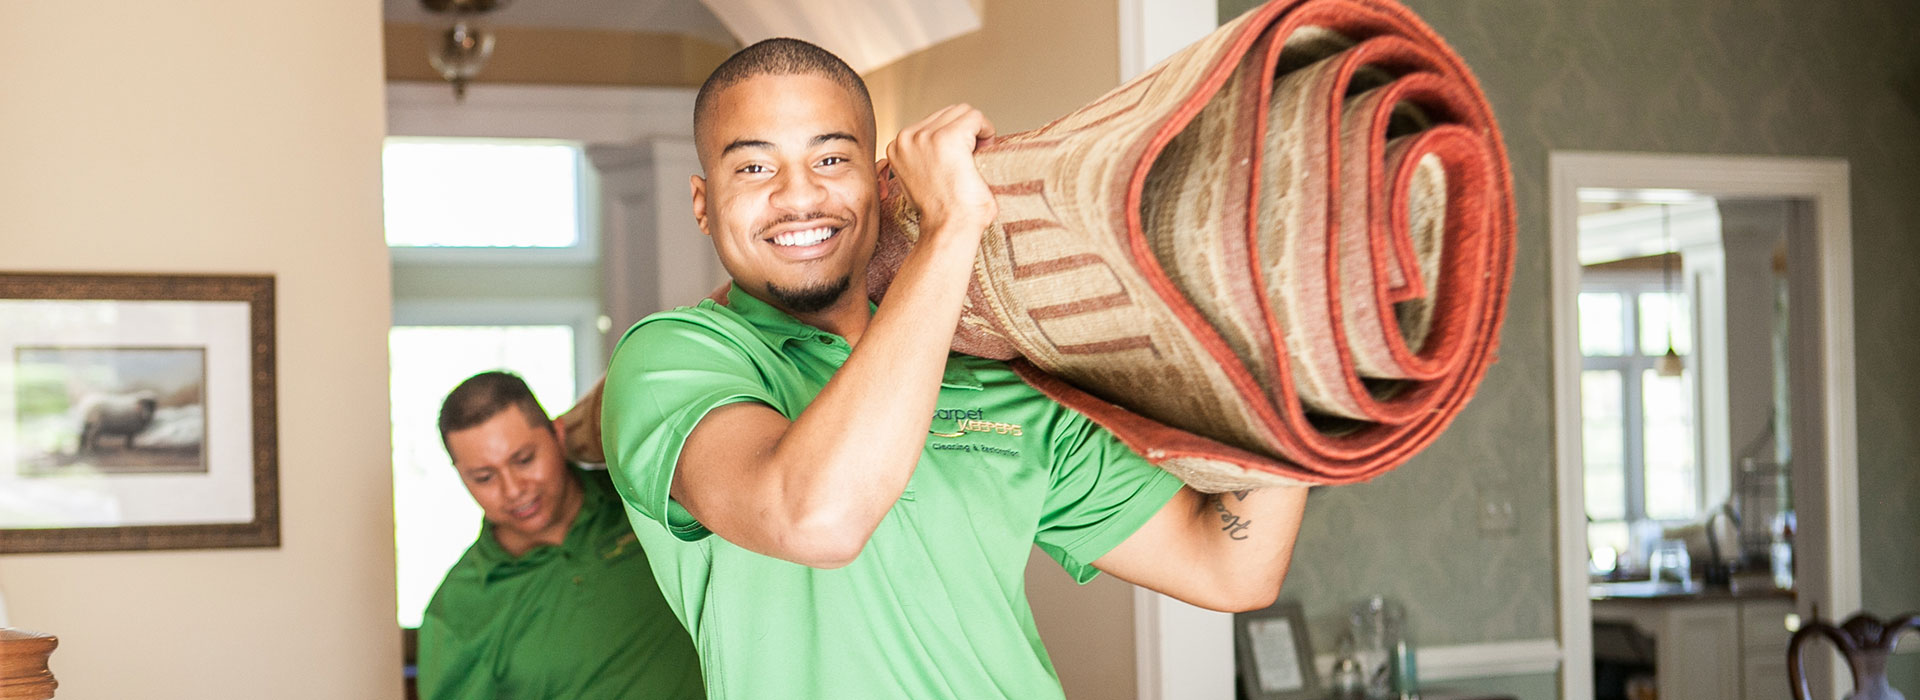 Area Rug cleaners - Carpet Keepers Leesburg VA